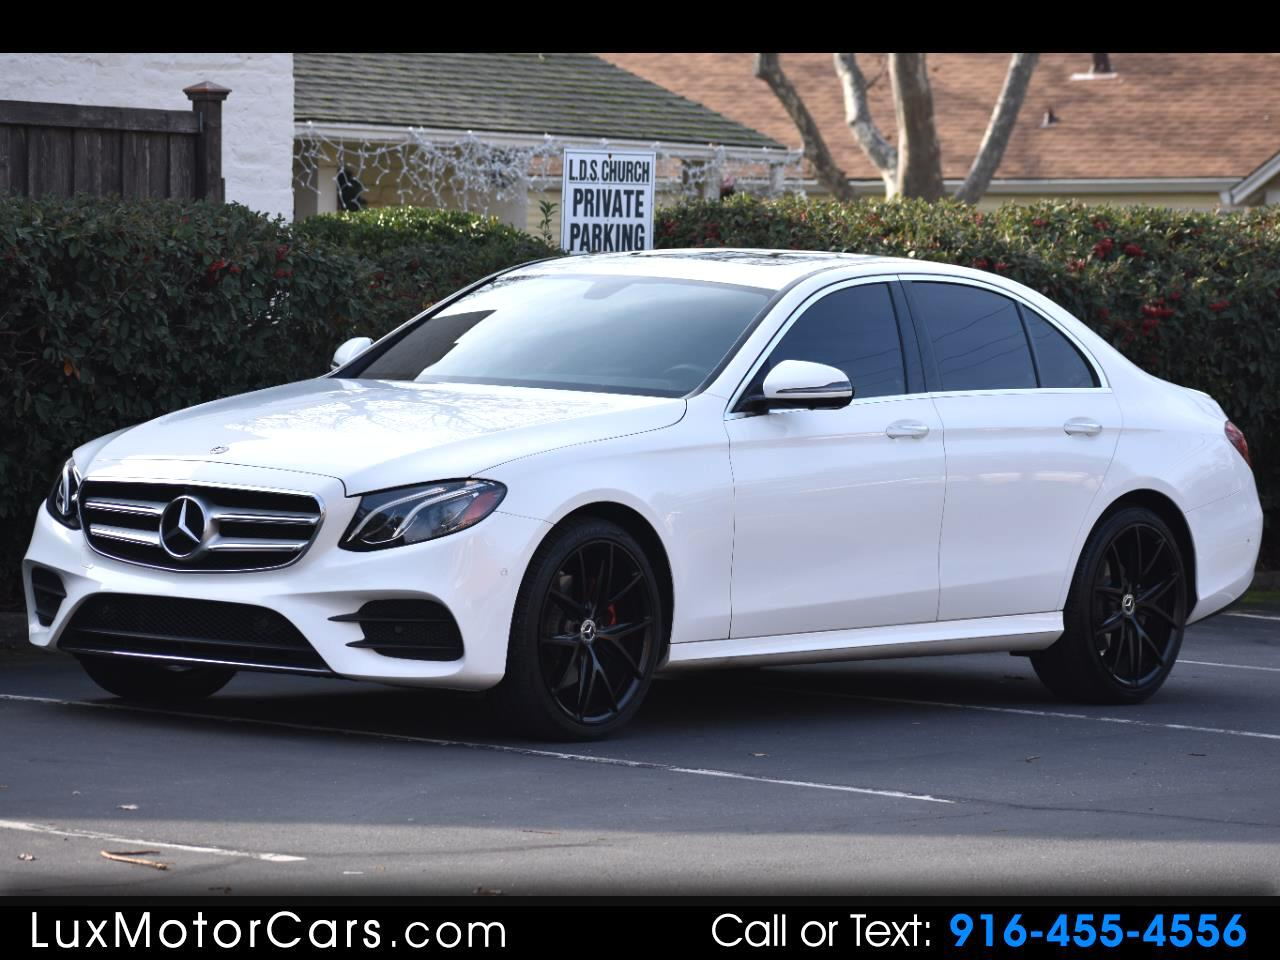 Mercedes-Benz E-Class E300 Luxury 4MATIC Sedan 2019